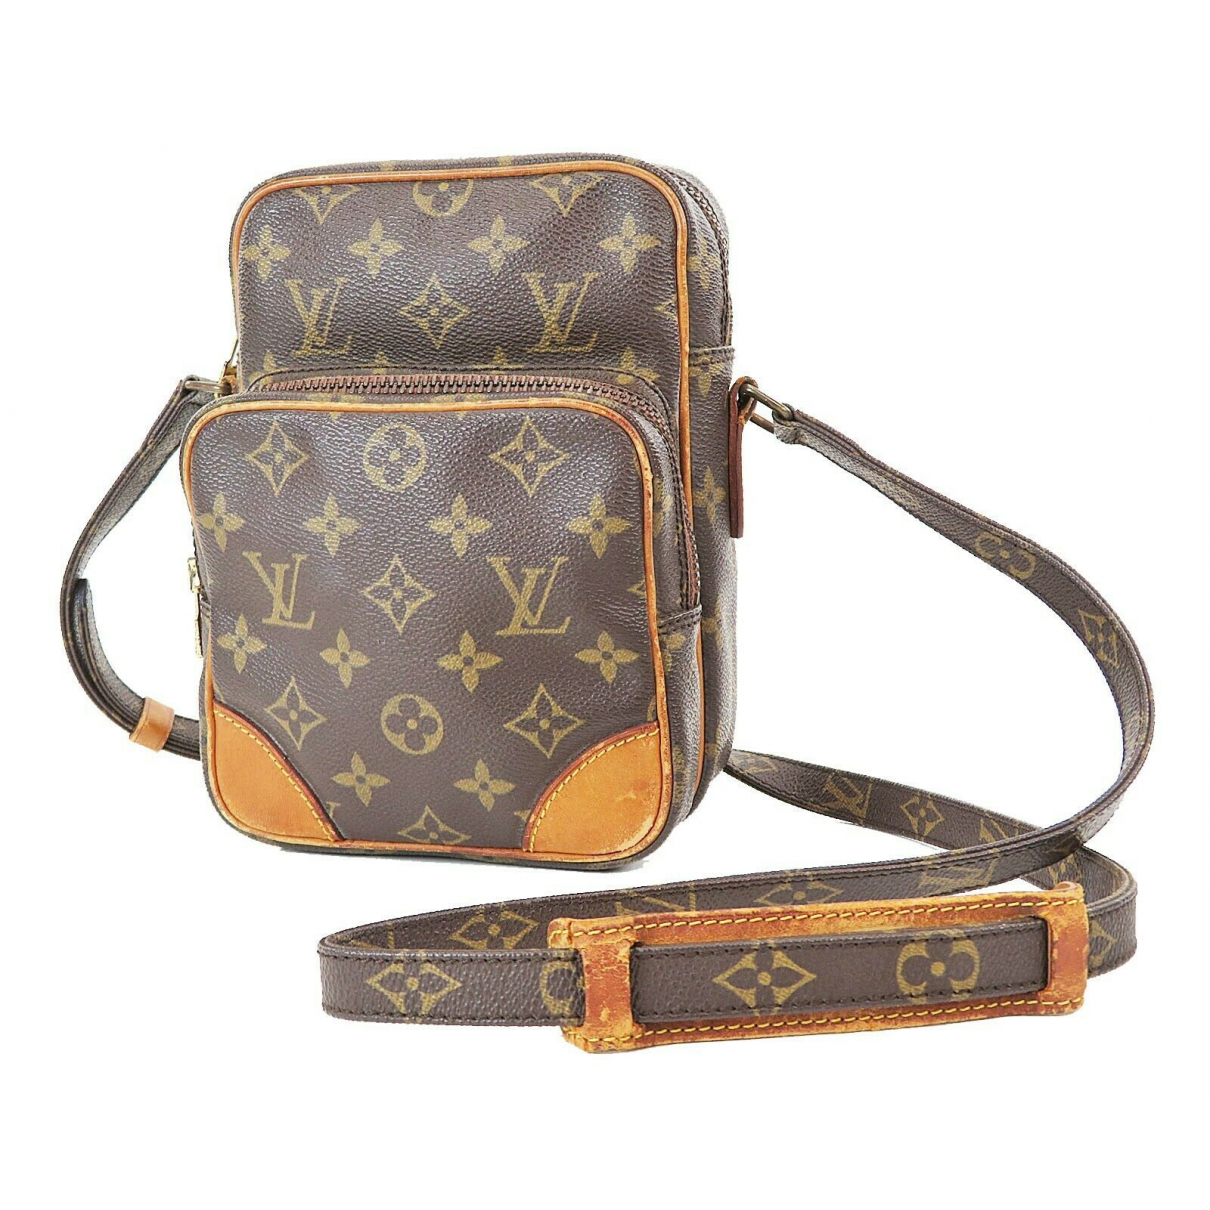 Louis Vuitton \N Brown Leather handbag for Women \N